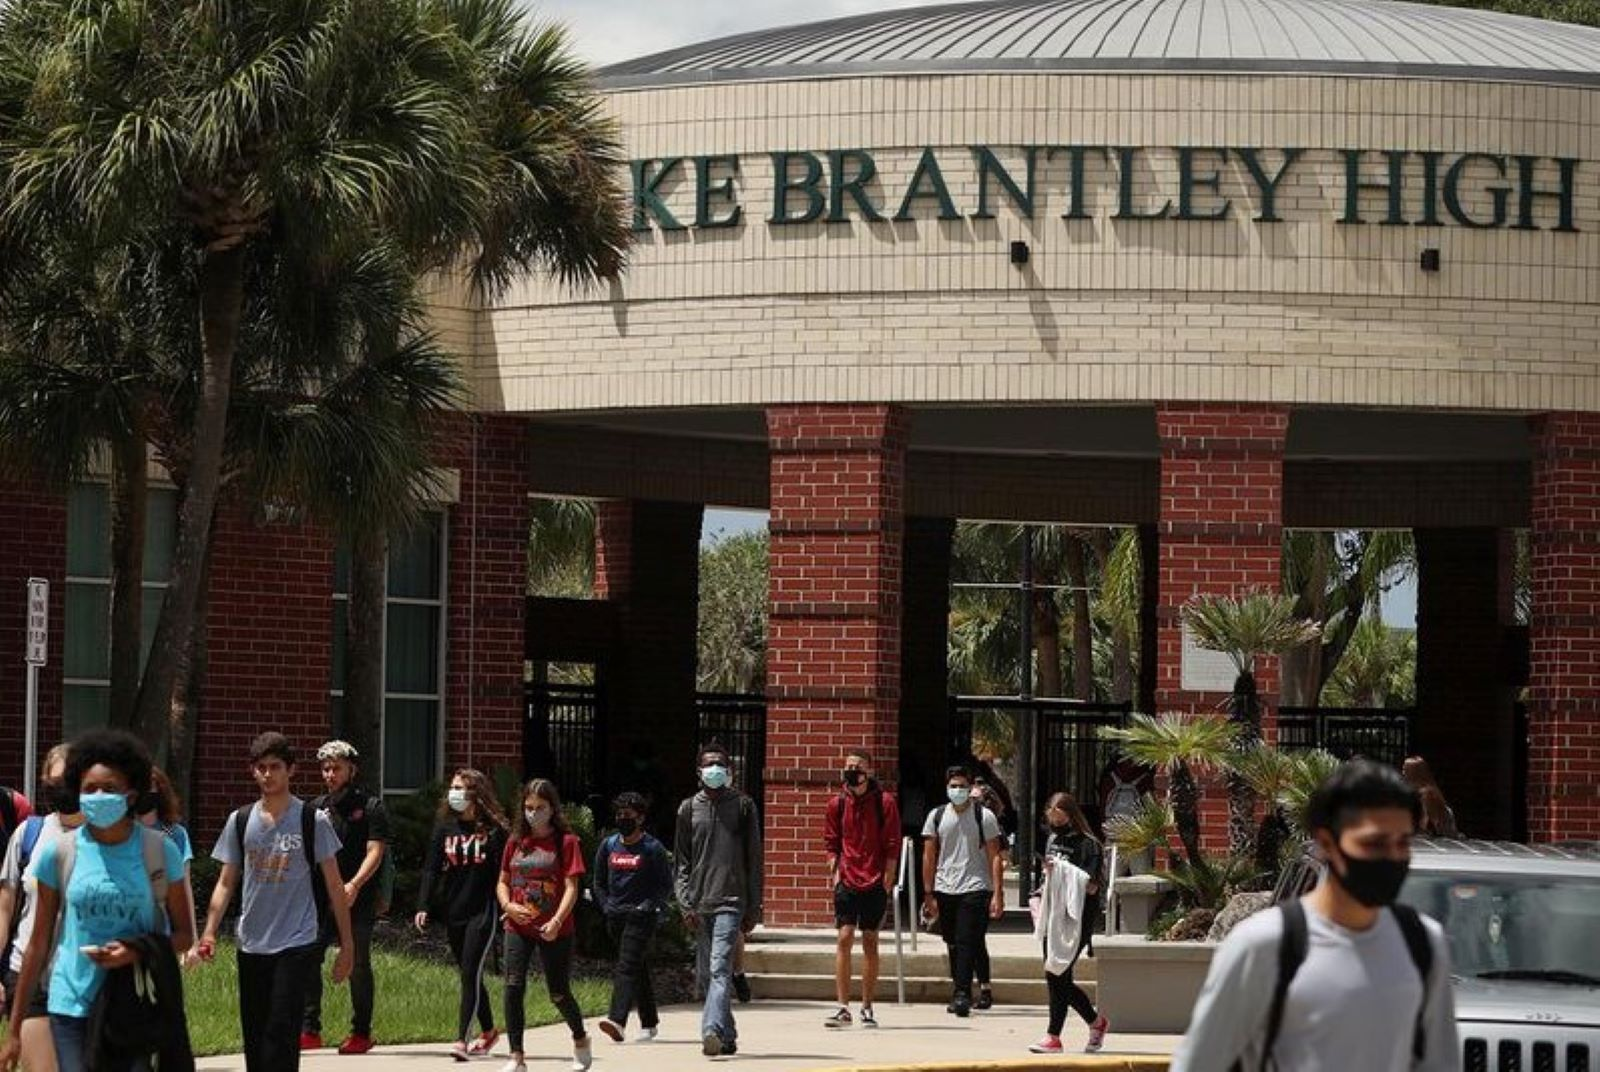 Students leave Lake Brantley High School after the final bell on Thursday, August 27, 2020. The Seminole County school district, like its counterparts across the state, opened schools for in-person classes this month.(Stephen M. Dowell/Orlando Sentinel) (Stephen M. Dowell/Orlando Sentinel)